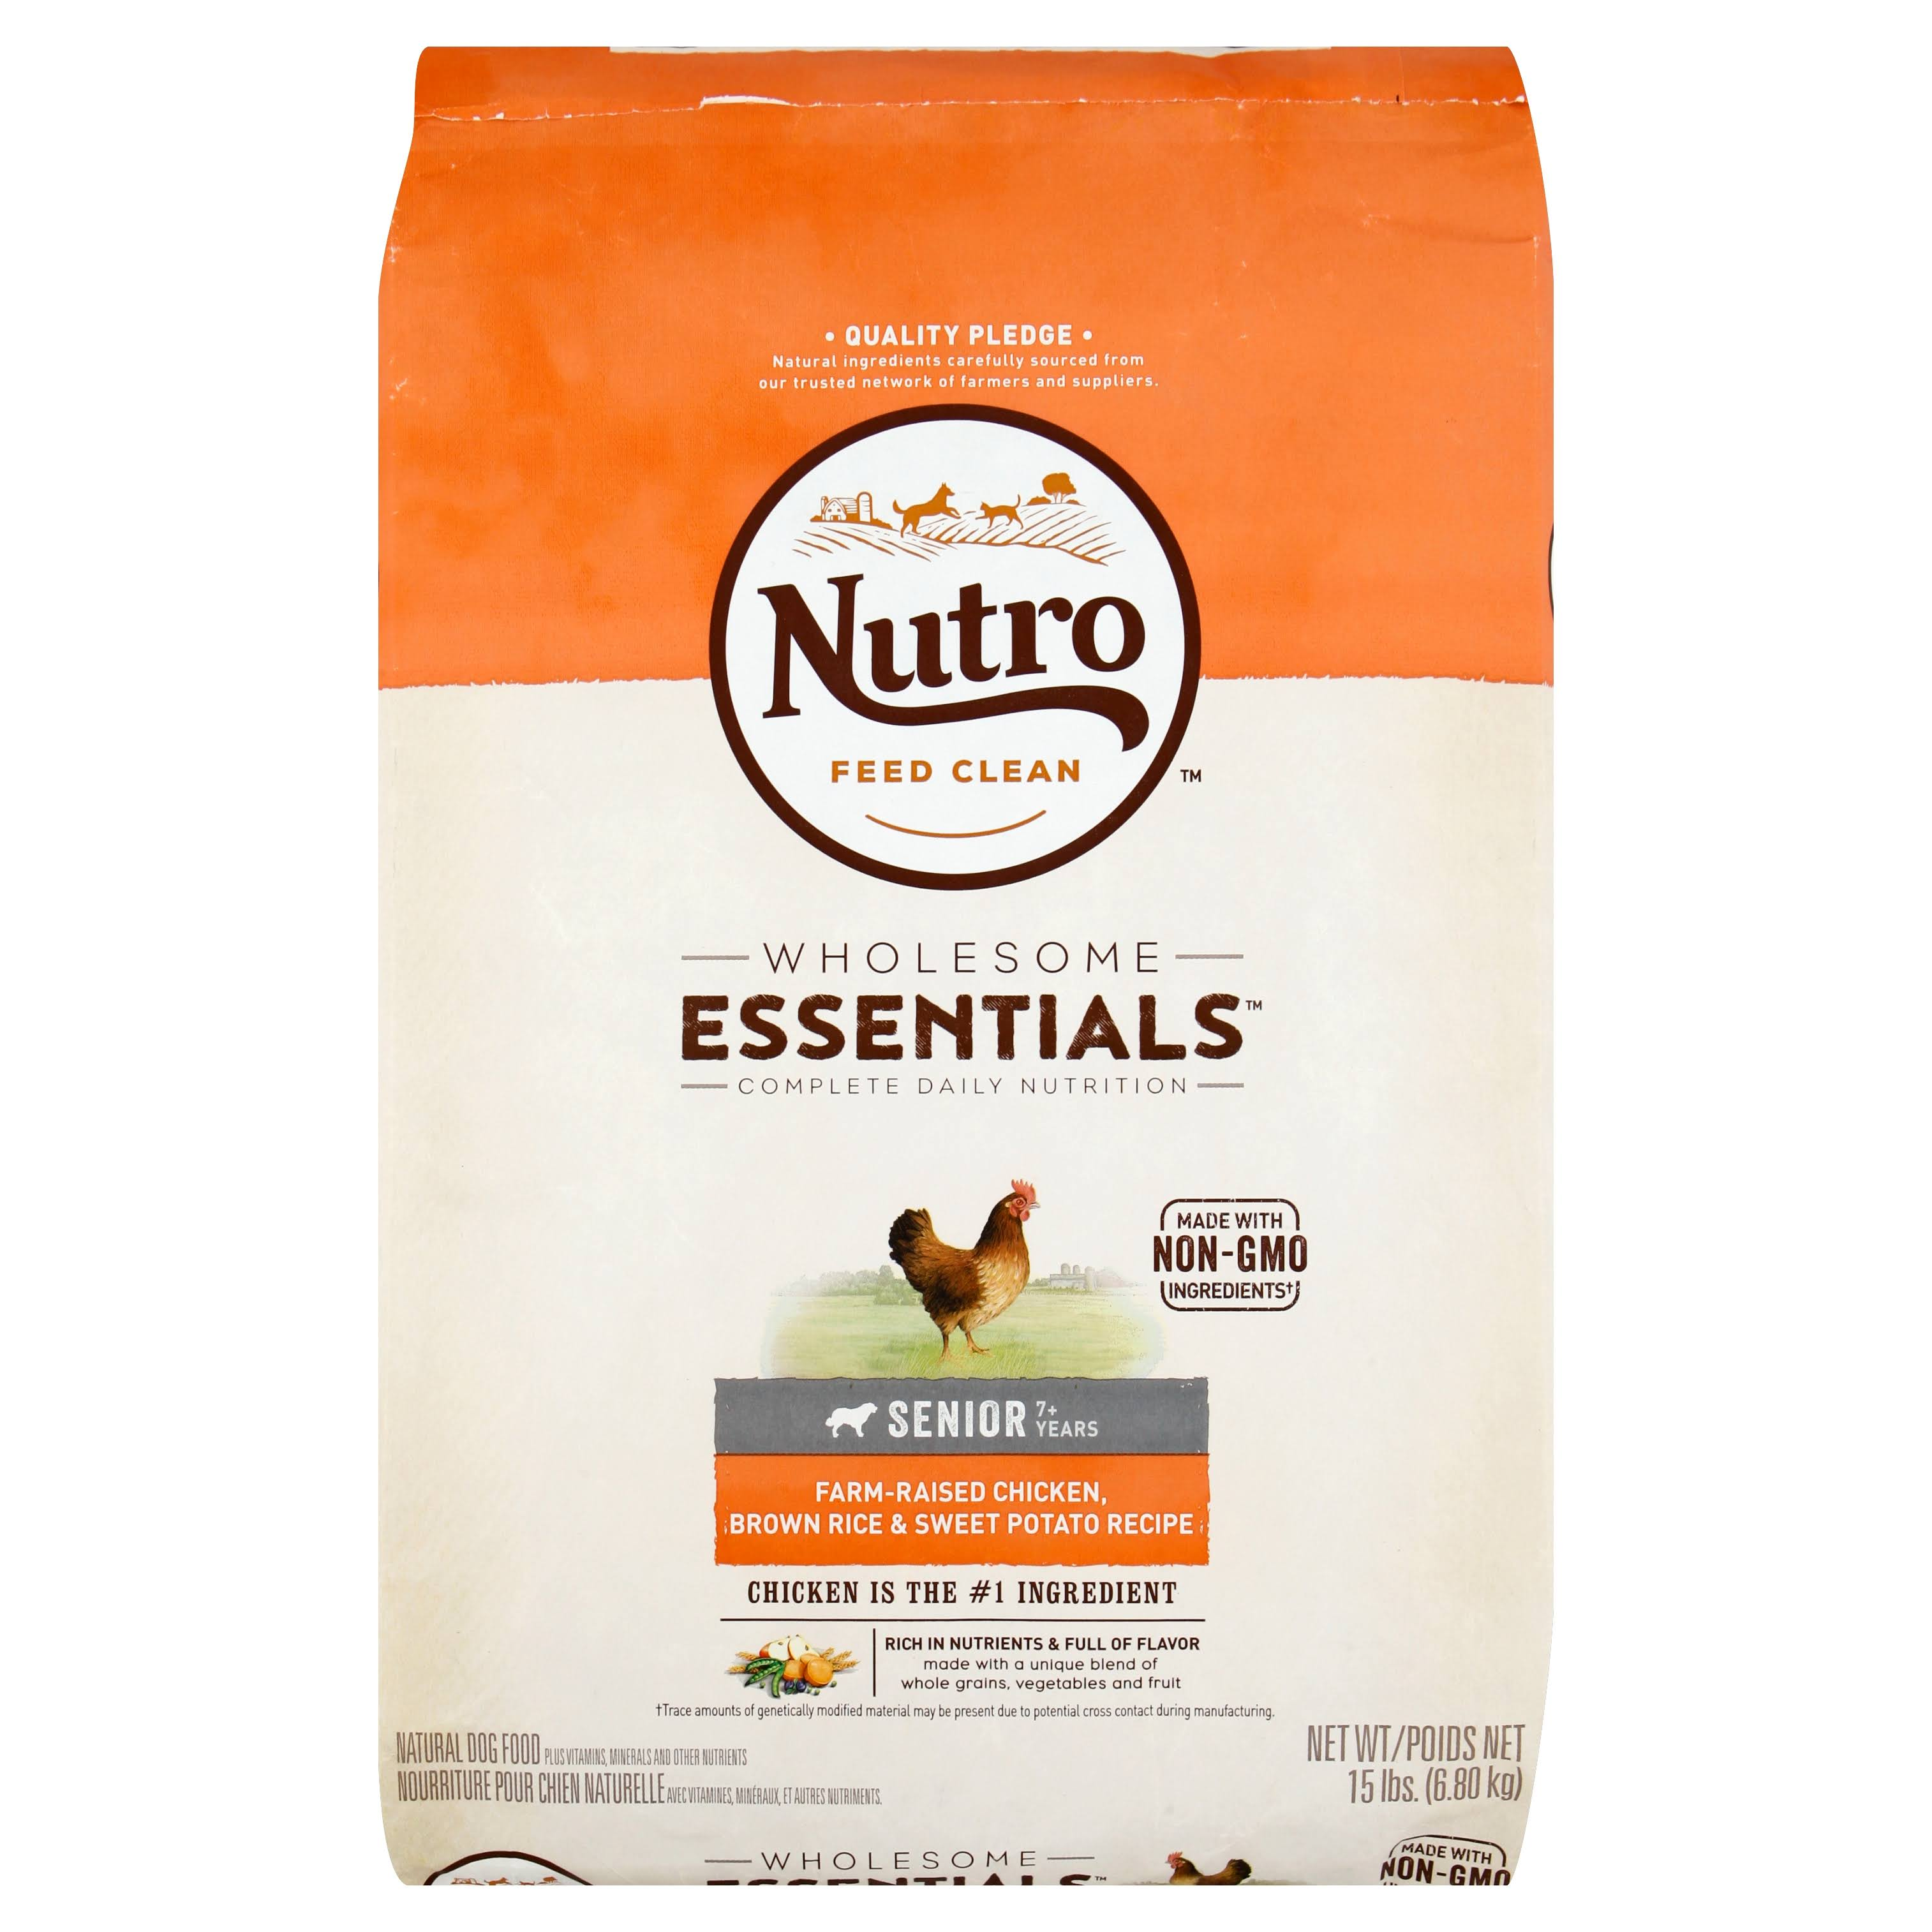 Nutro Wholesome Essentials Dog Food - Chicken Brown Rice & Sweet Potato Recipe